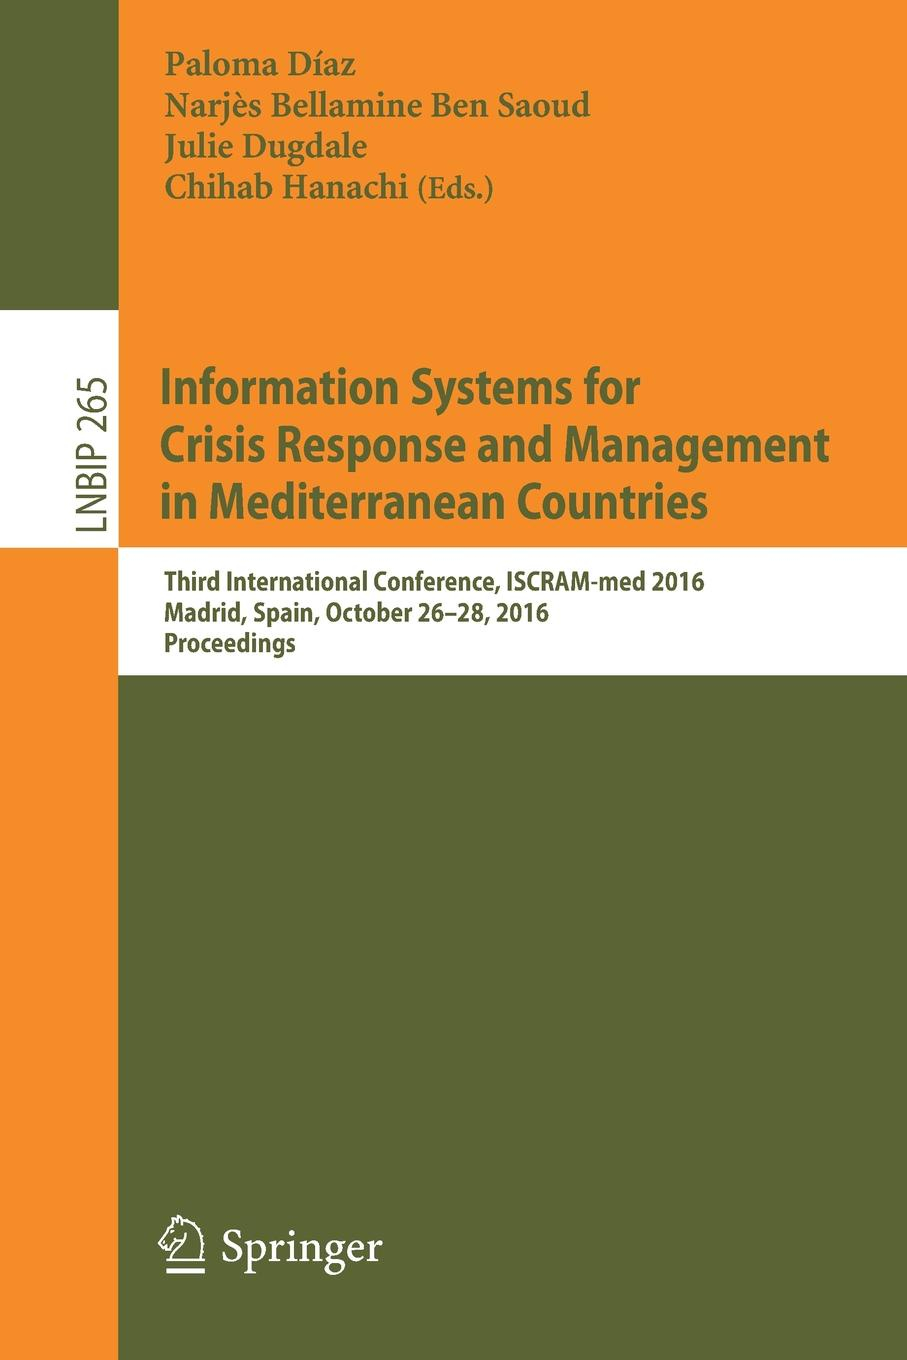 Information Systems for Crisis Response and Management in Mediterranean Countries. Third International Conference, ISCRAM-med 2016, Madrid, Spain, October 26-28, 2016, Proceedings